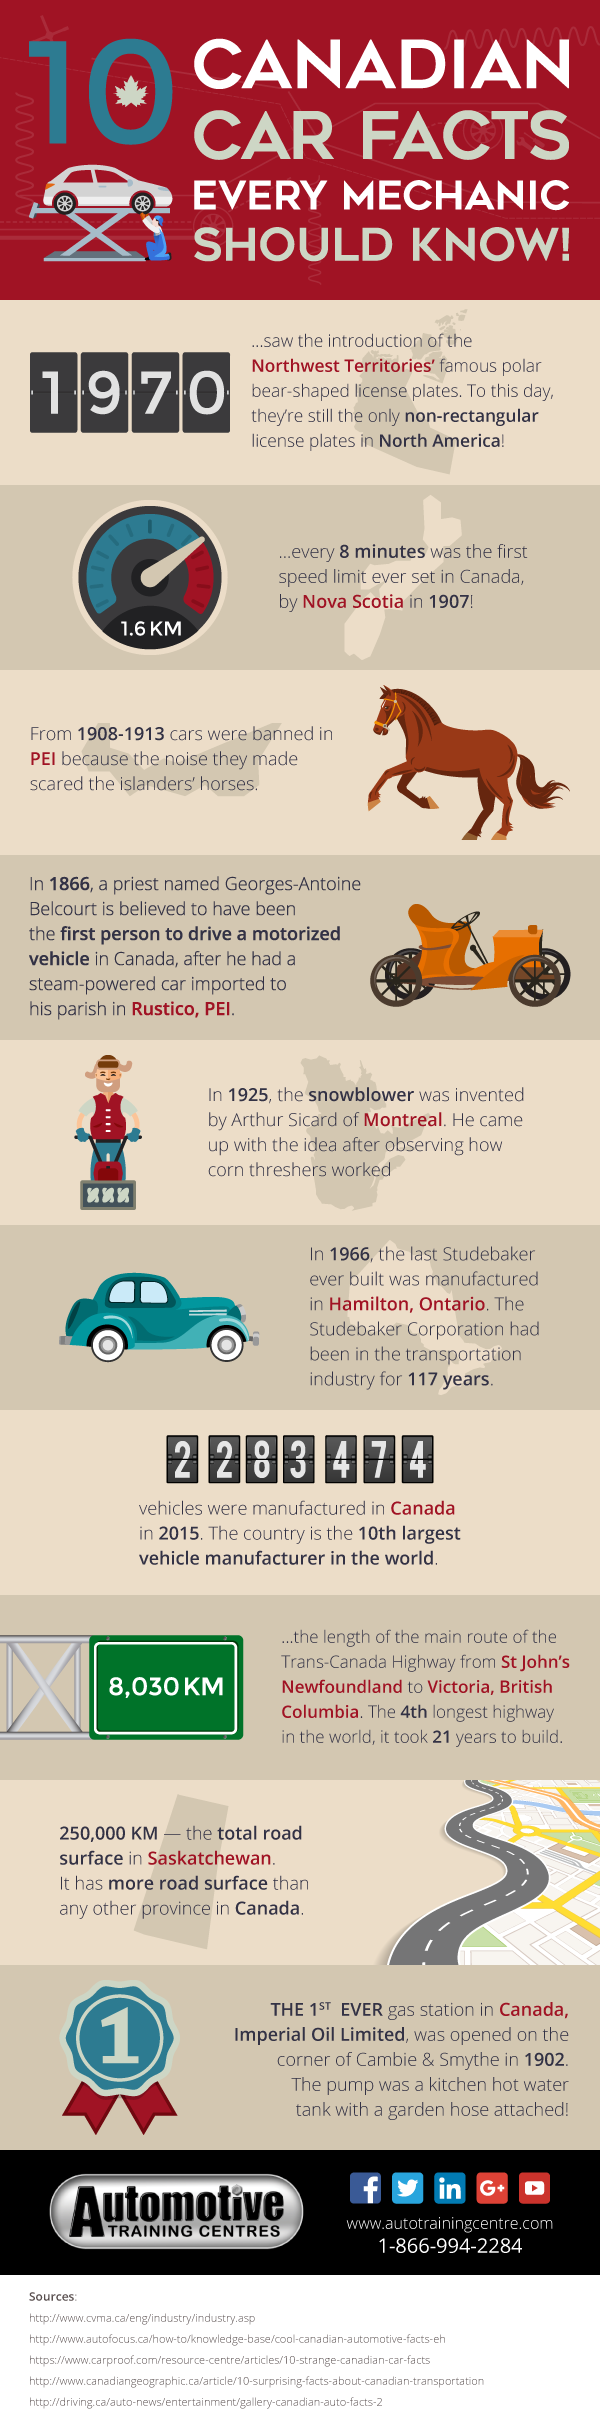 atc-cambridge_canadian_car_facts